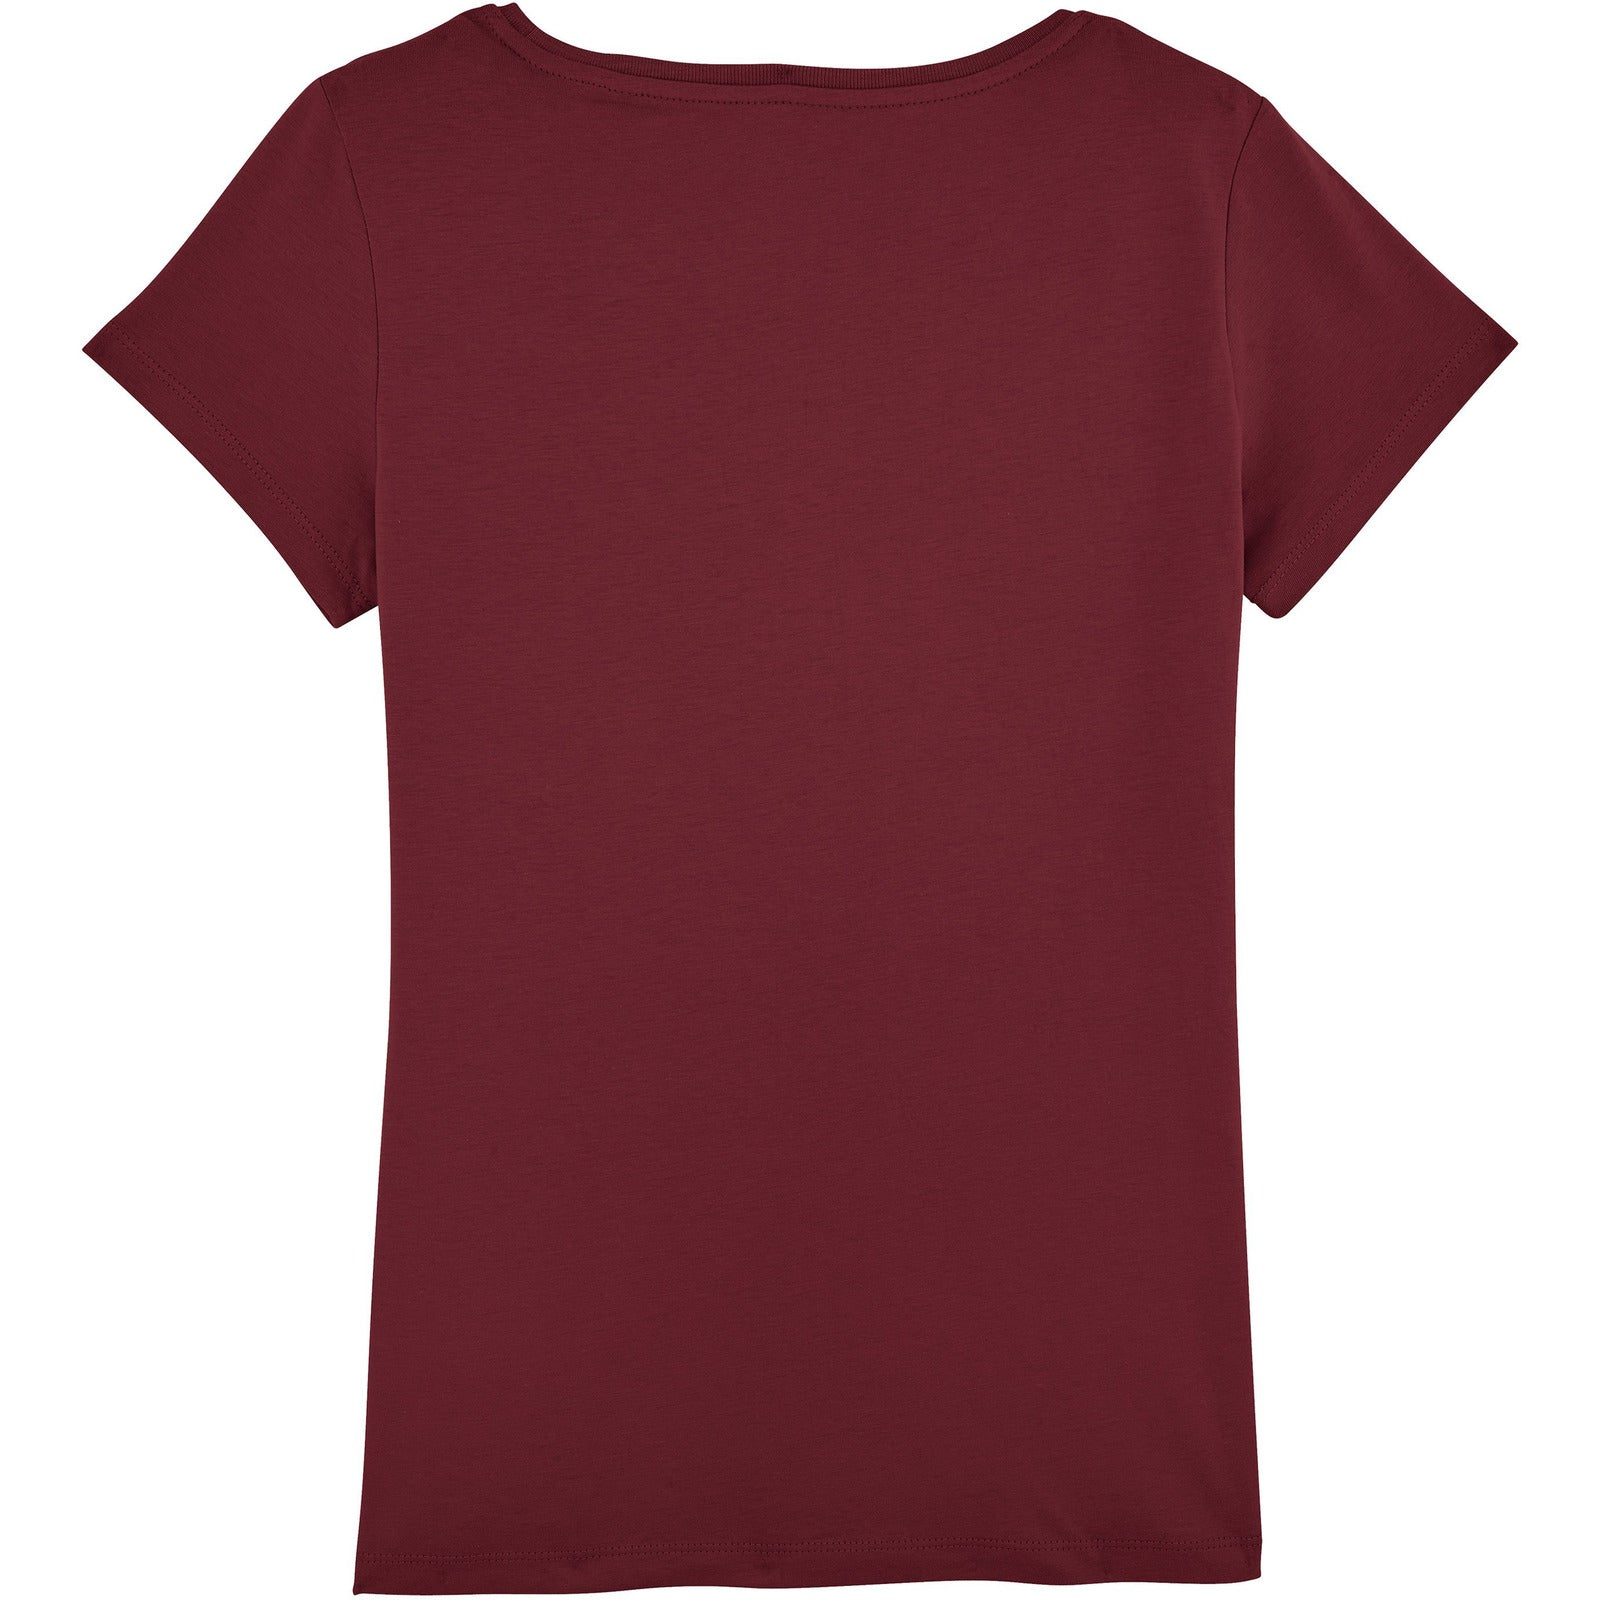 T-Shirt Regular Fit [BURGUND ROT]